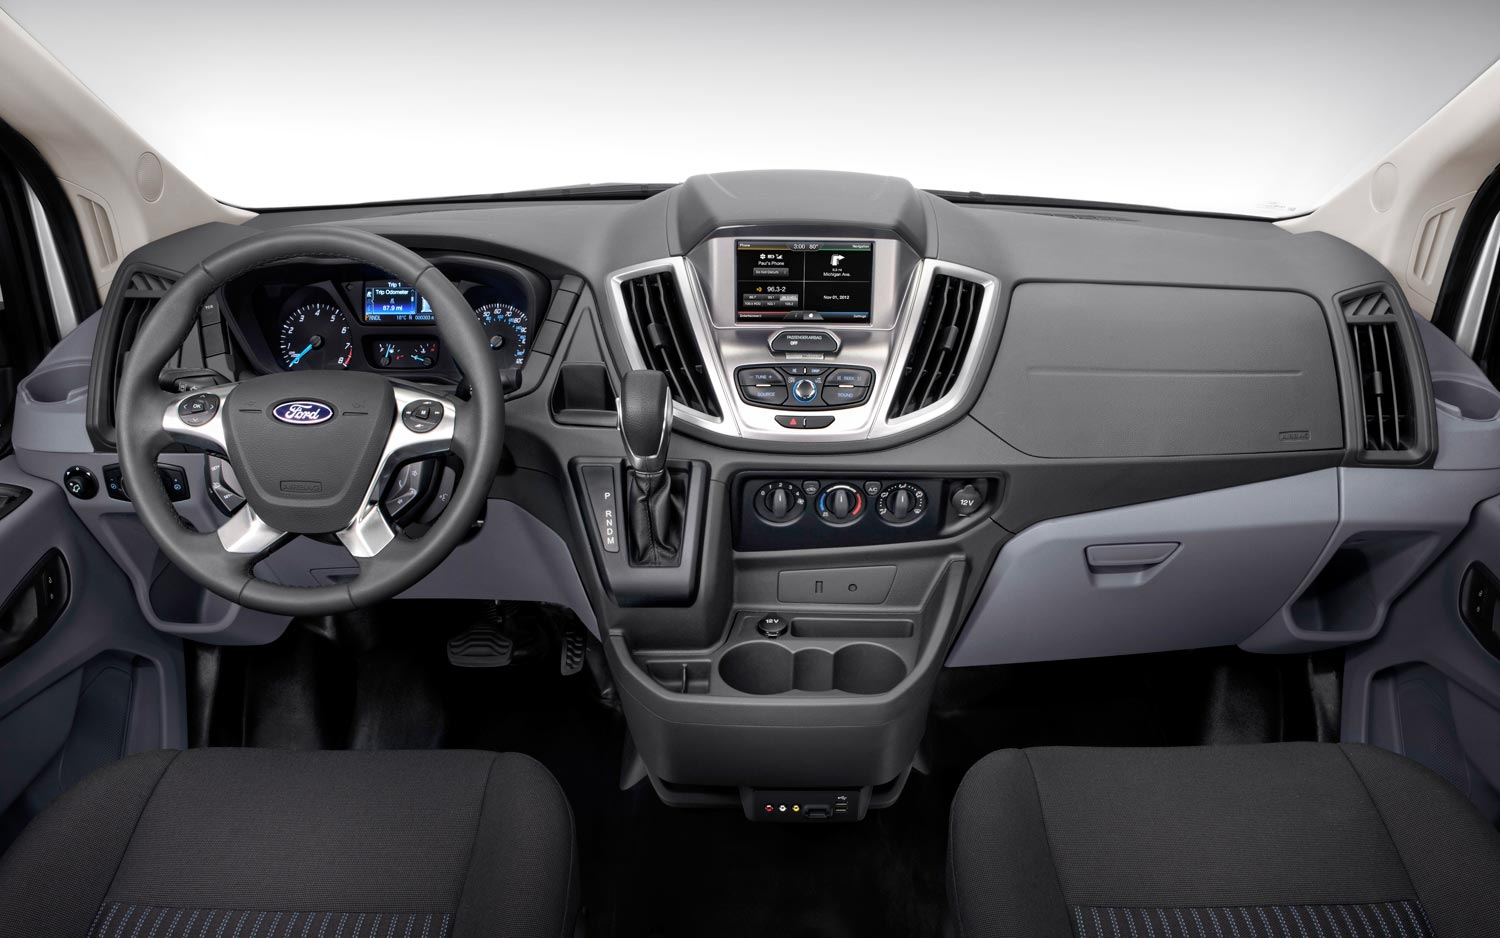 Ford E-Series Wagon 2014 #7